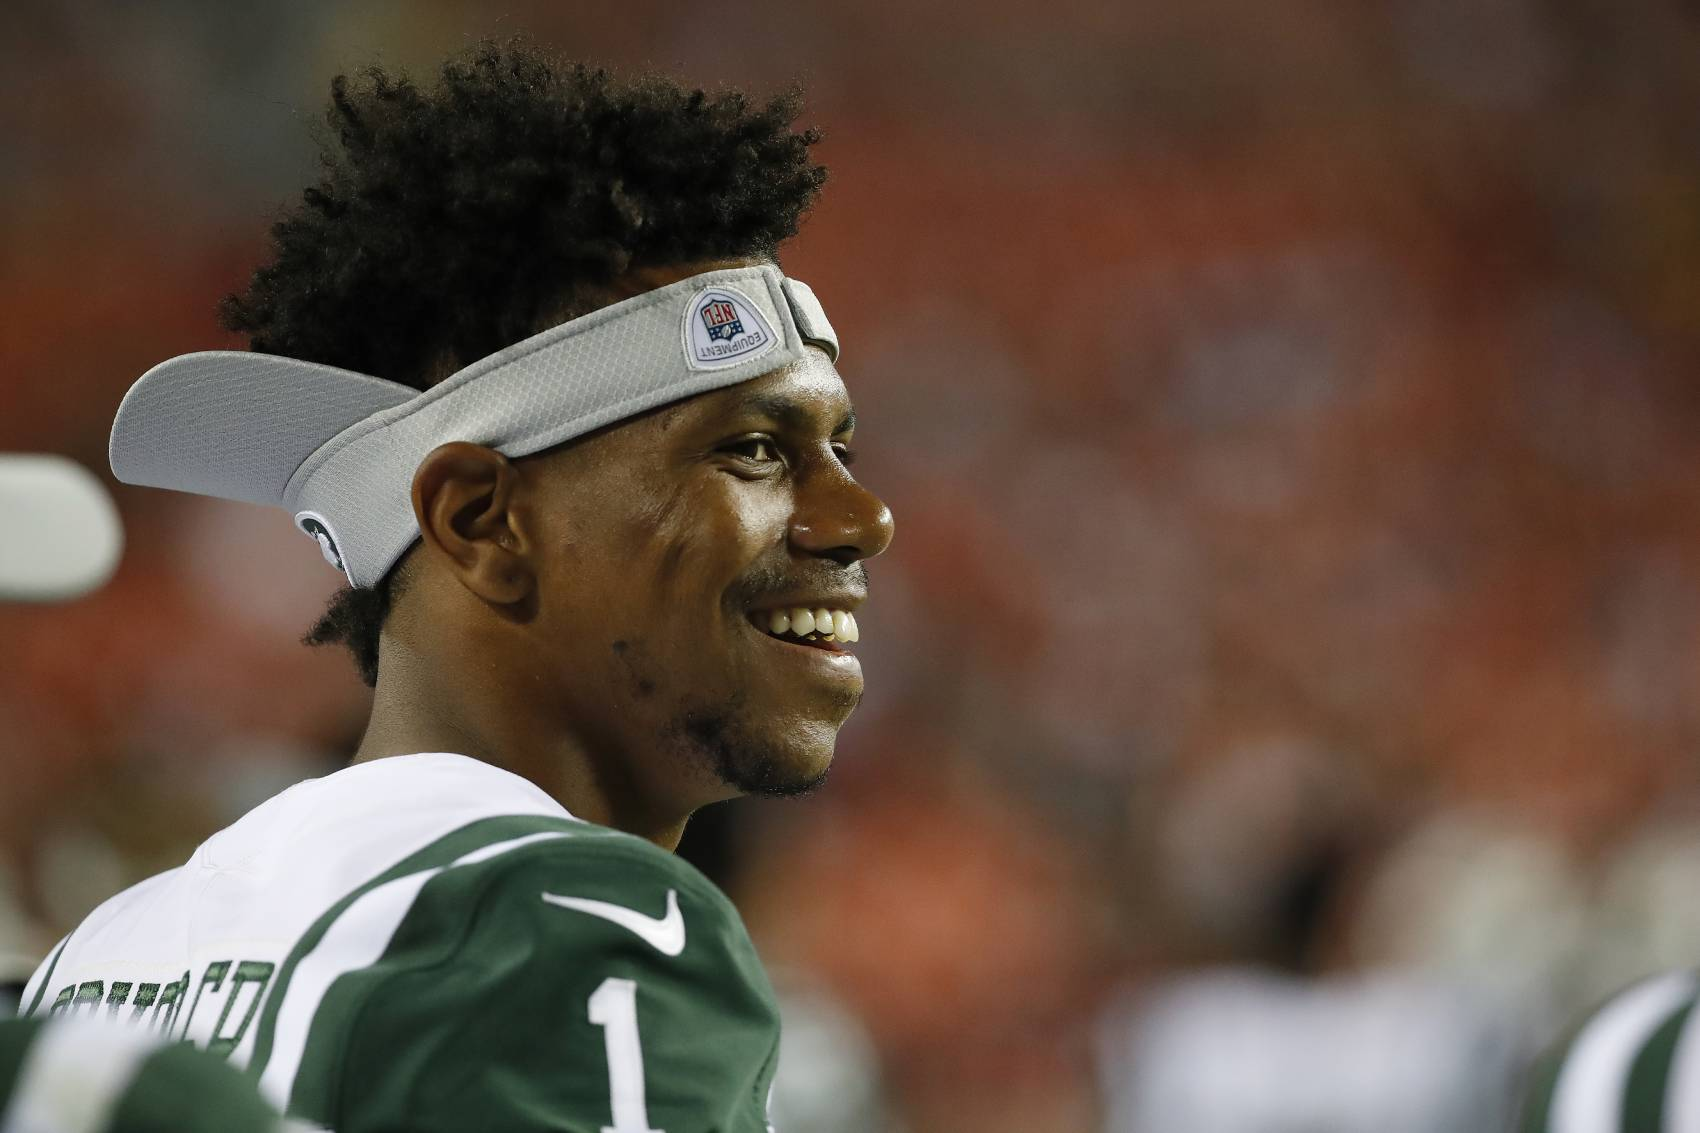 Former Jets receiver Terrelle Pryor is trying to make an NFL comeback. Pryor didn't play in 2019 and suffered a stab wound last fall.